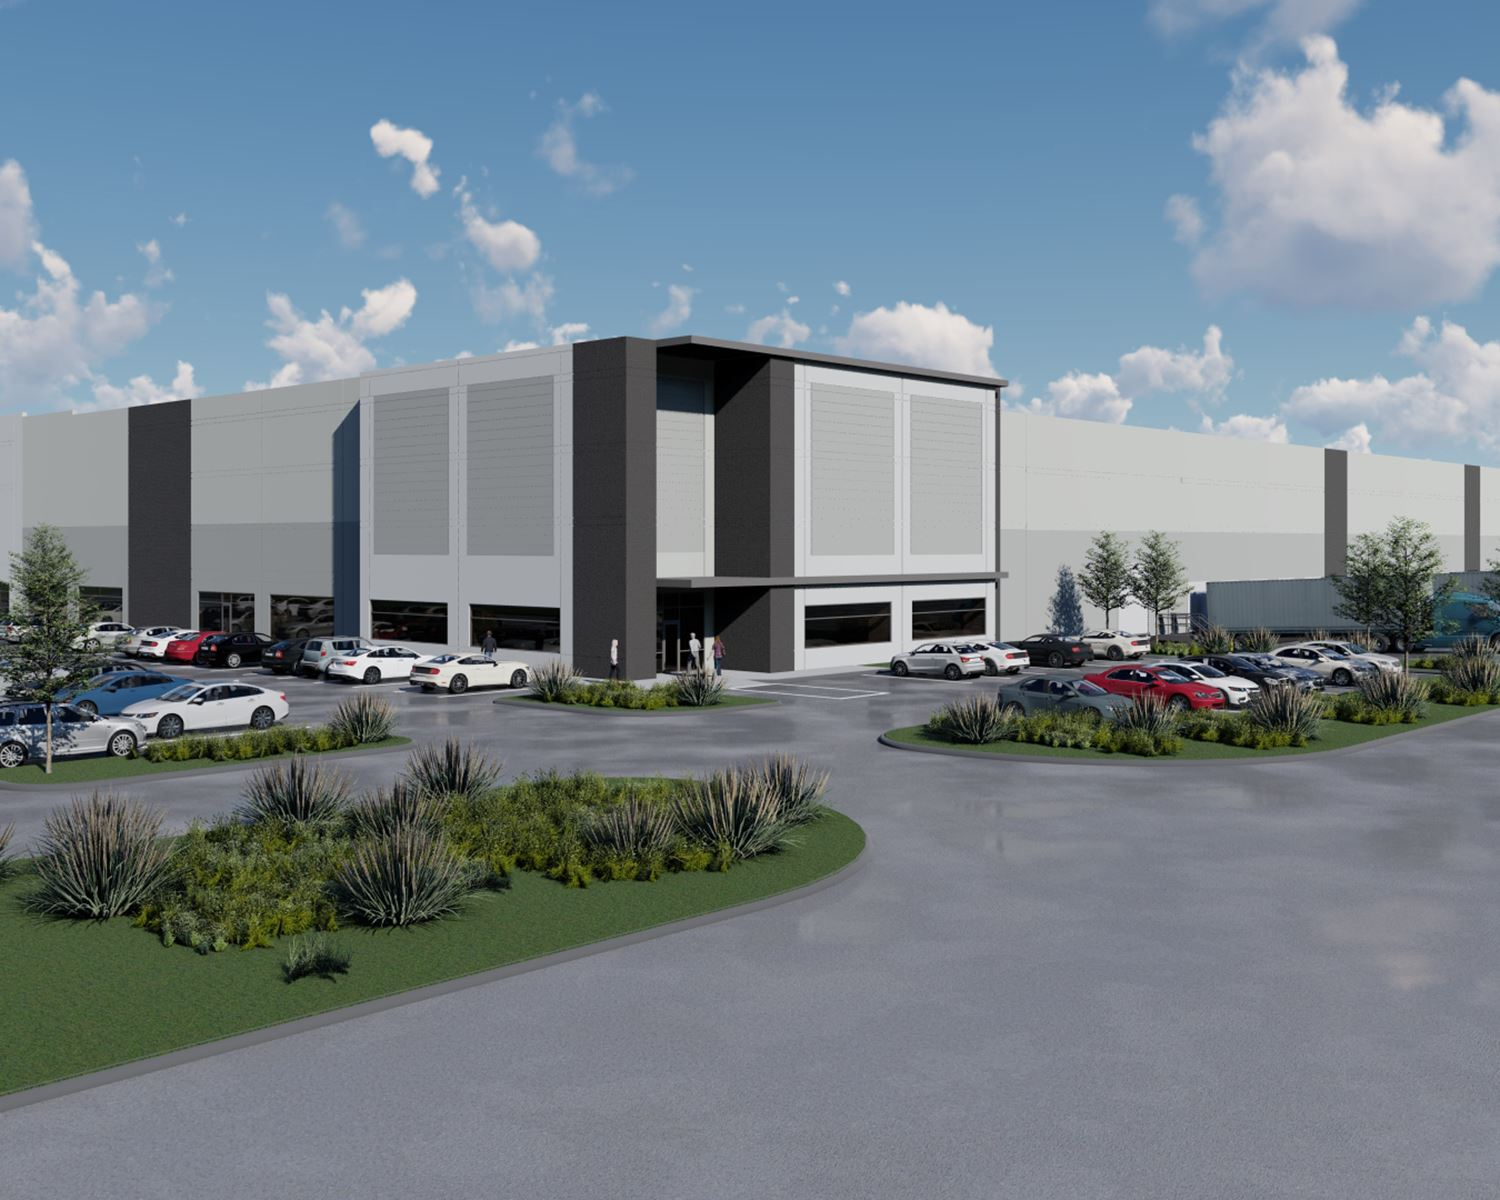 5-7-21 Mesquite Airport Logistics Center - rendering of one building - Mesquite TX